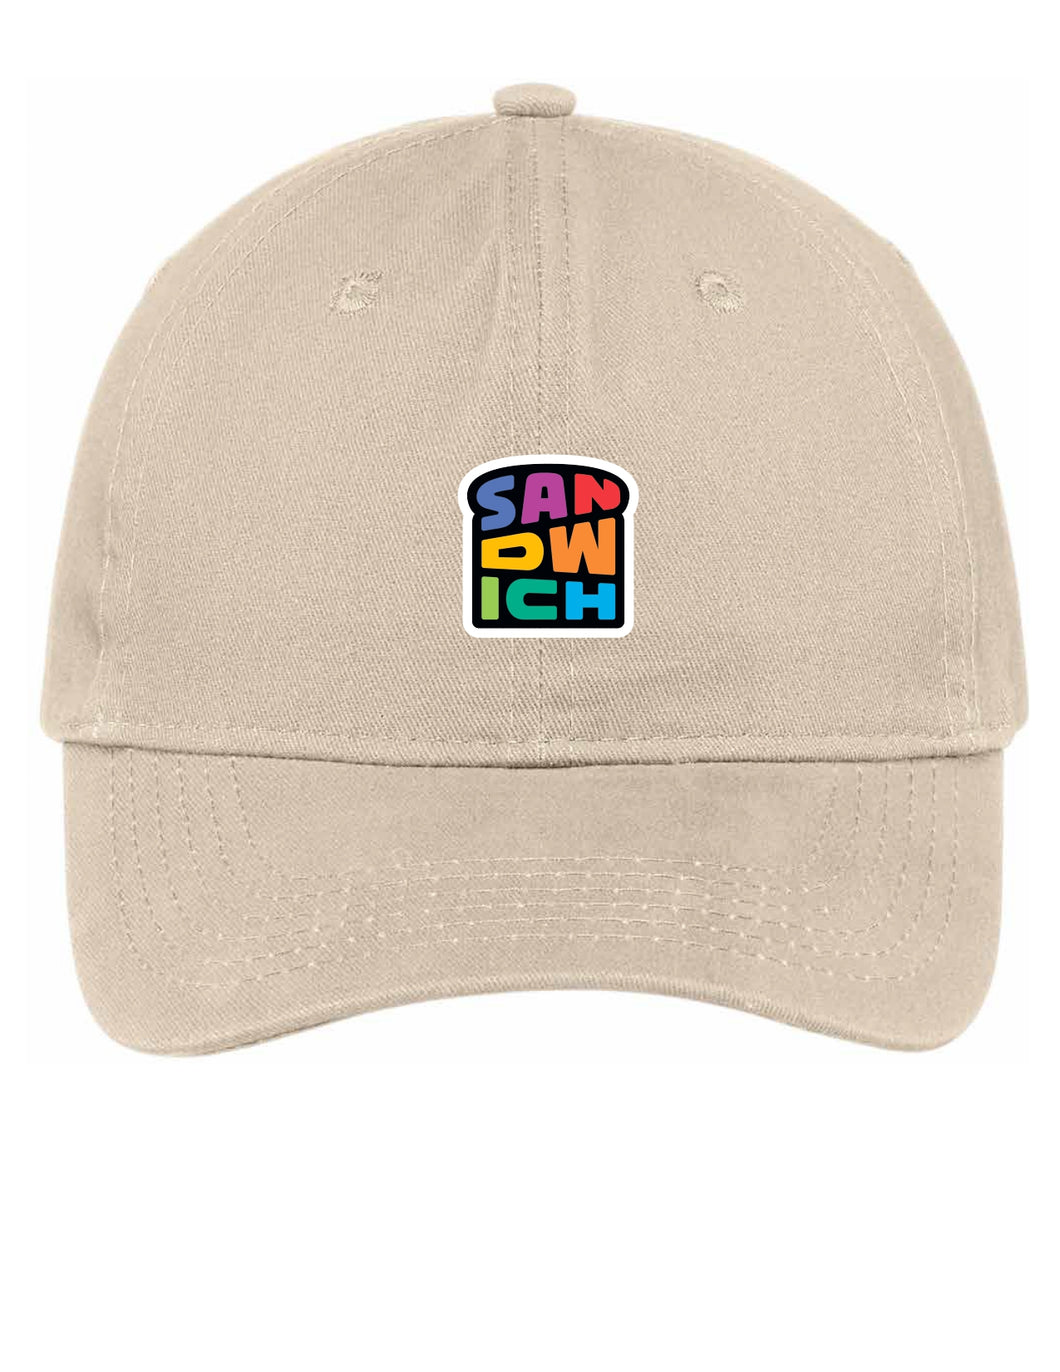 Stone Hat with Rainbow Logo